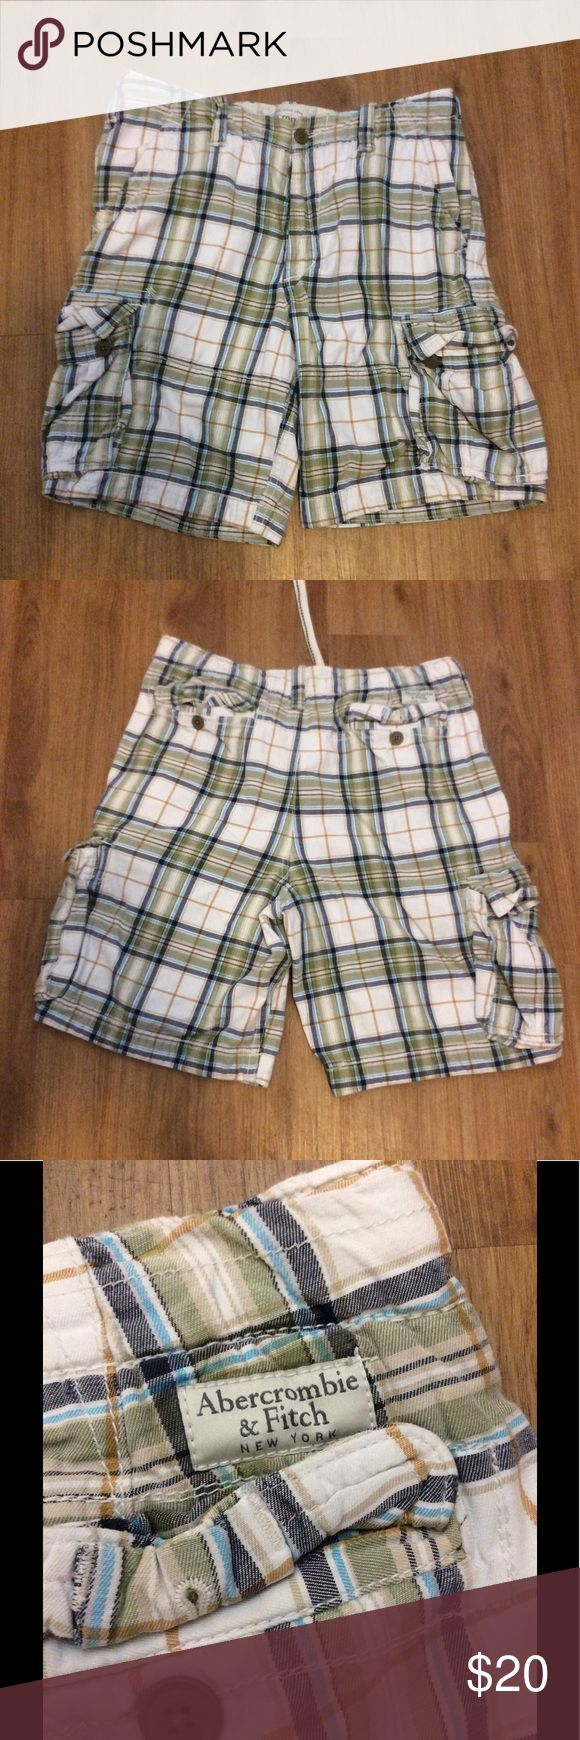 ABERCROMBIE AND FITCH SHORTS Good used condition Abercrombie and fitch plaid shorts. Abercrombie & Fitch Shorts Cargo